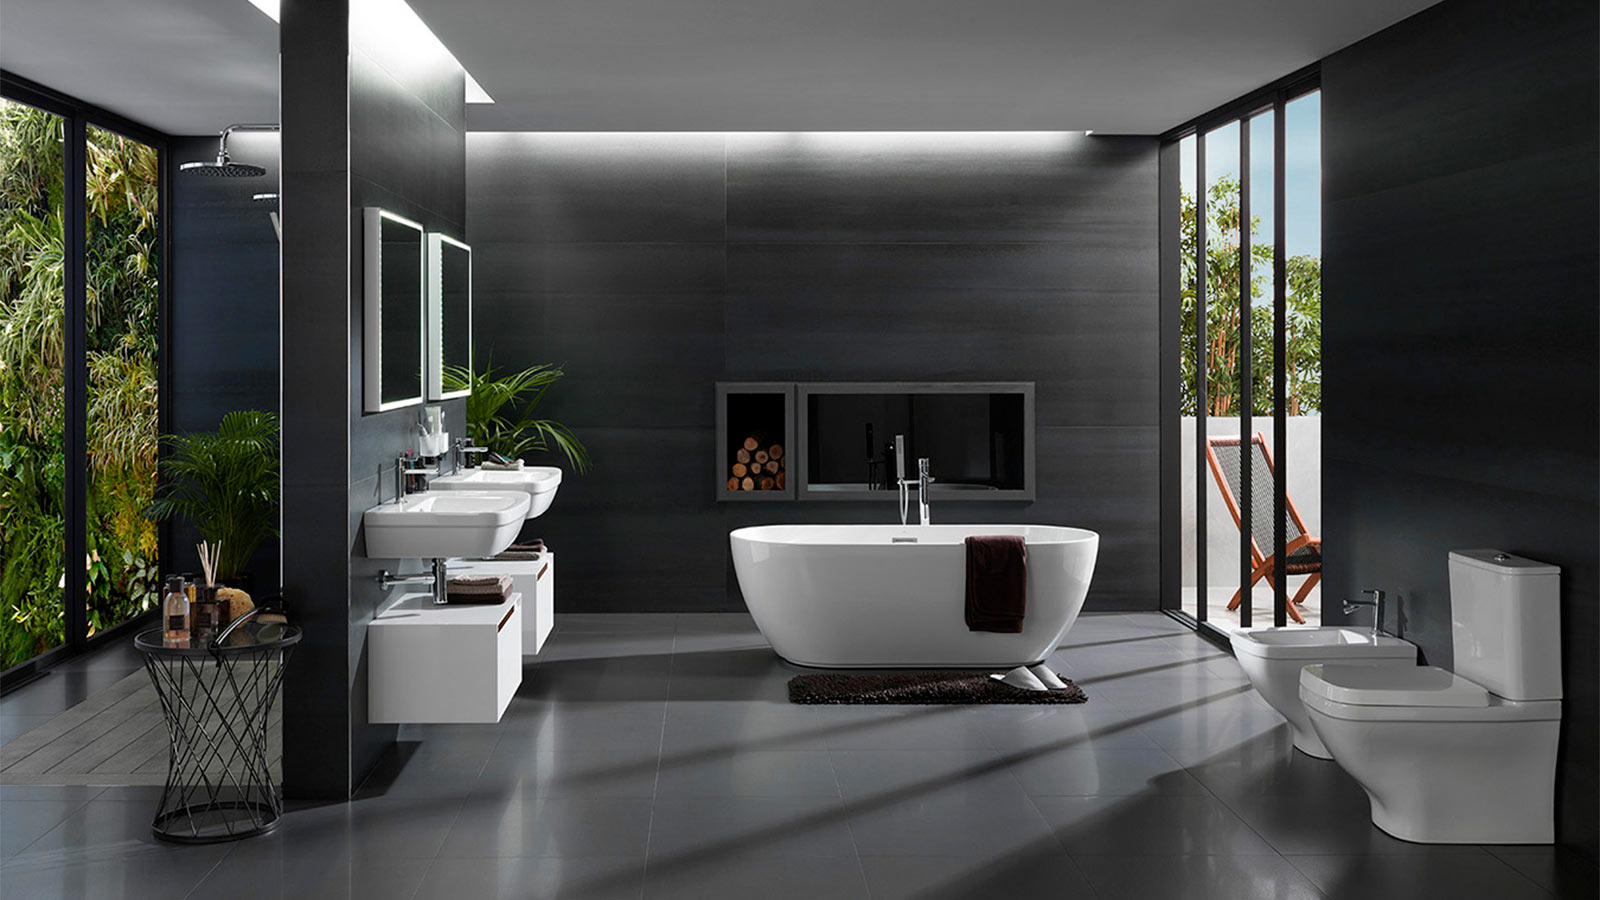 Black and white bathrooms will always be in style